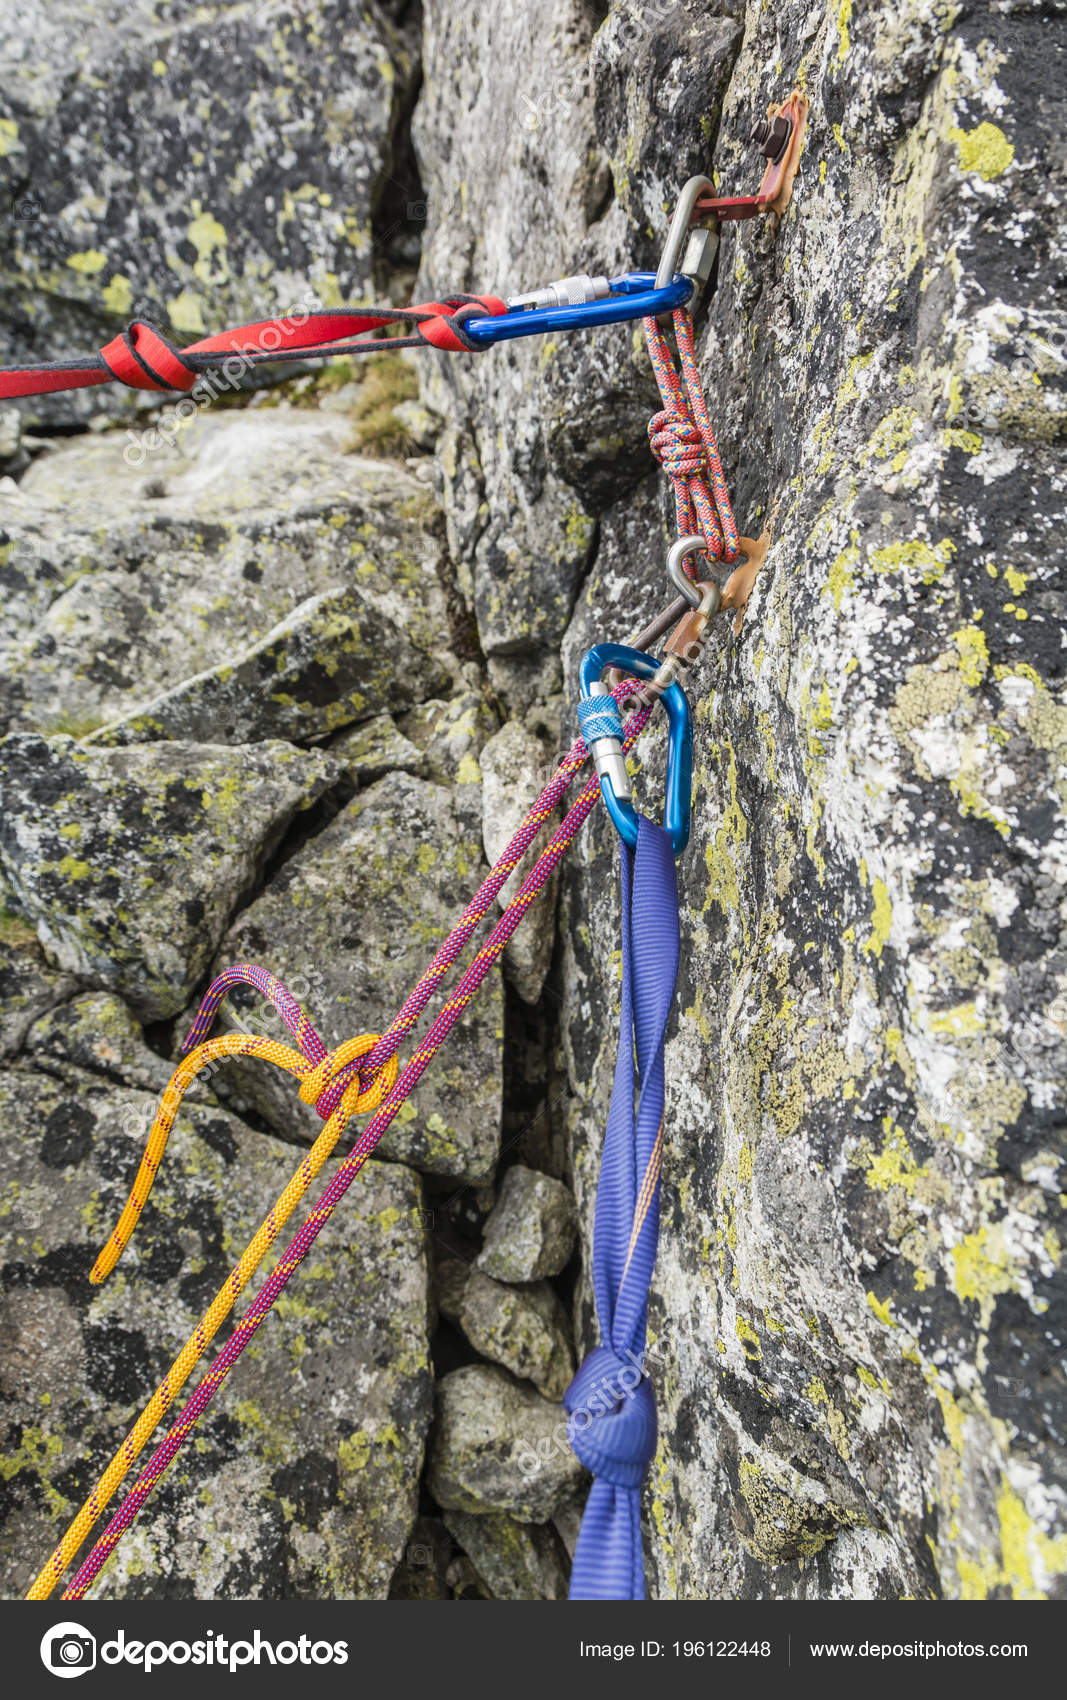 Rappel Stance Safety Loop Rappel Rope While Preparing Rappelling